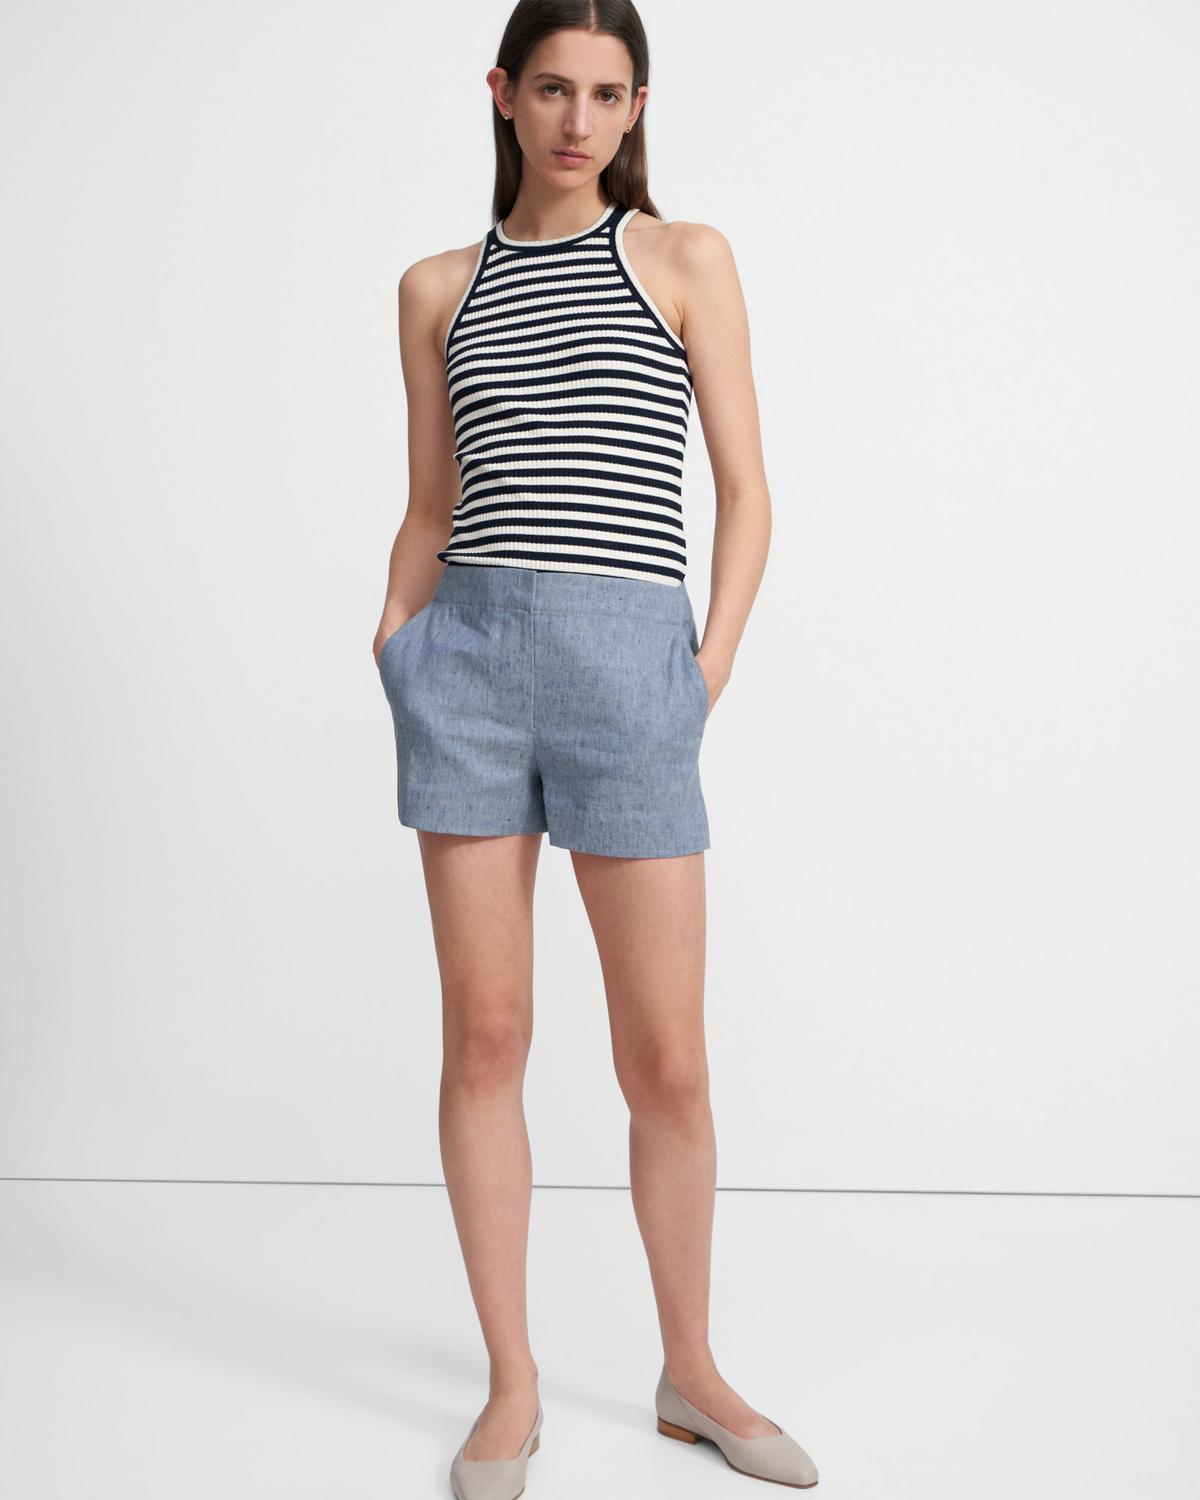 Racerback Tank Top in Striped Ribbed Knit